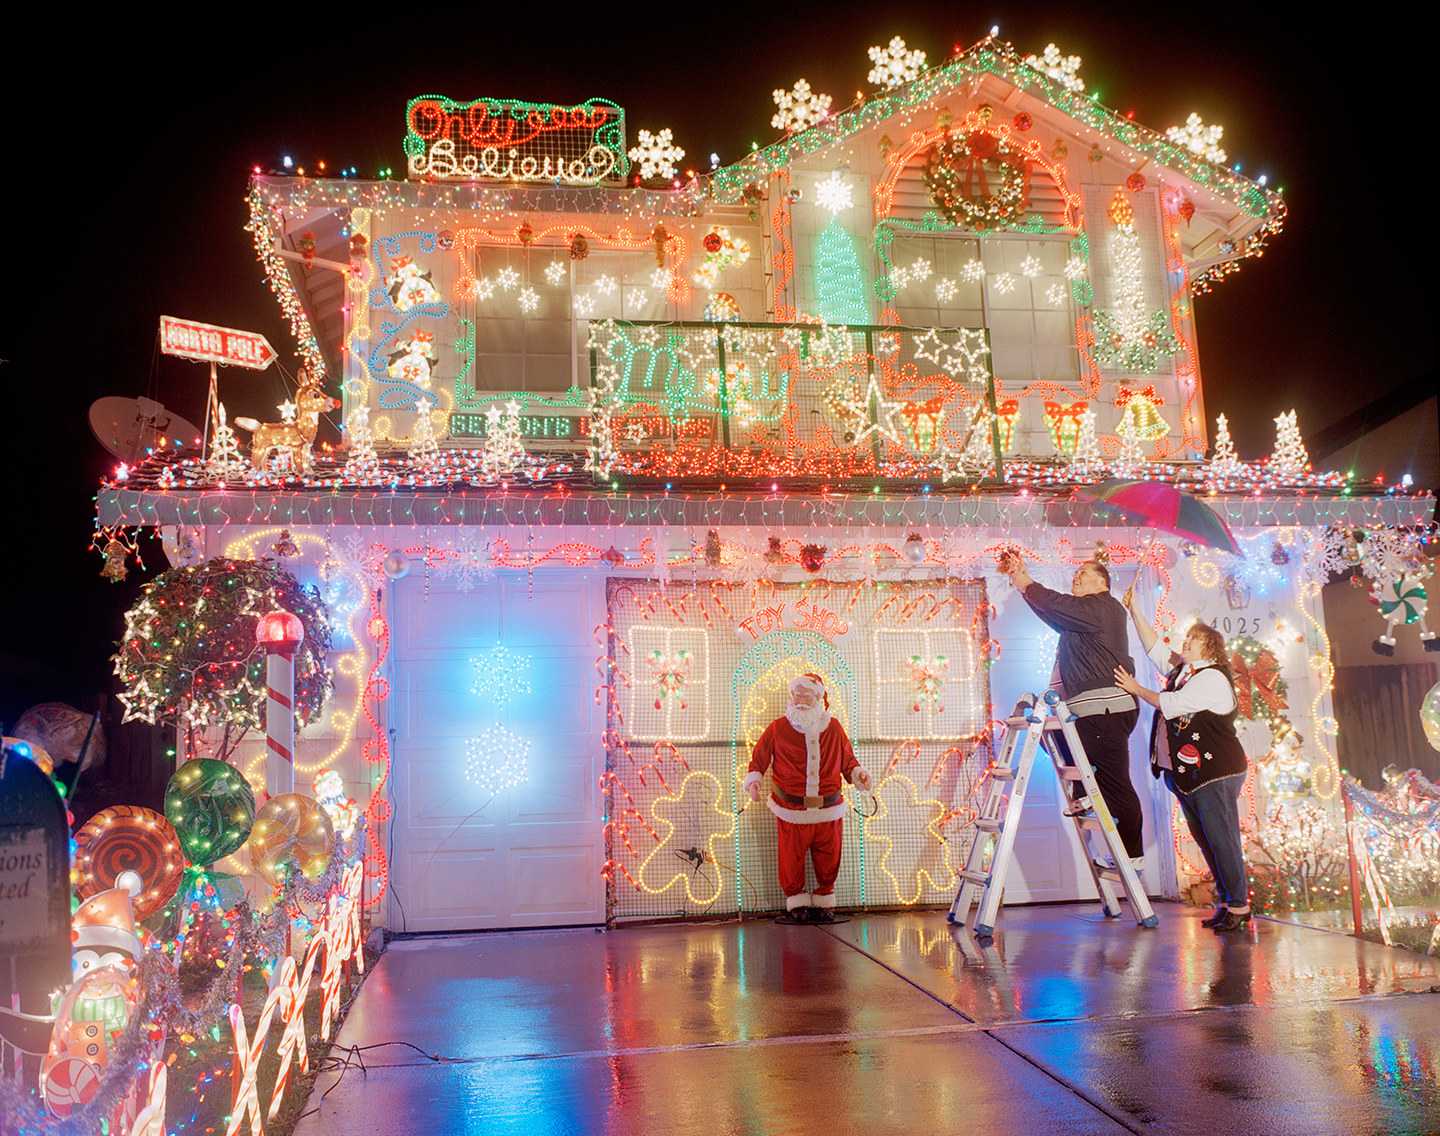 A man on a ladder adjusting Christmas lights on a house, with a woman supporting him, and a model of Santa